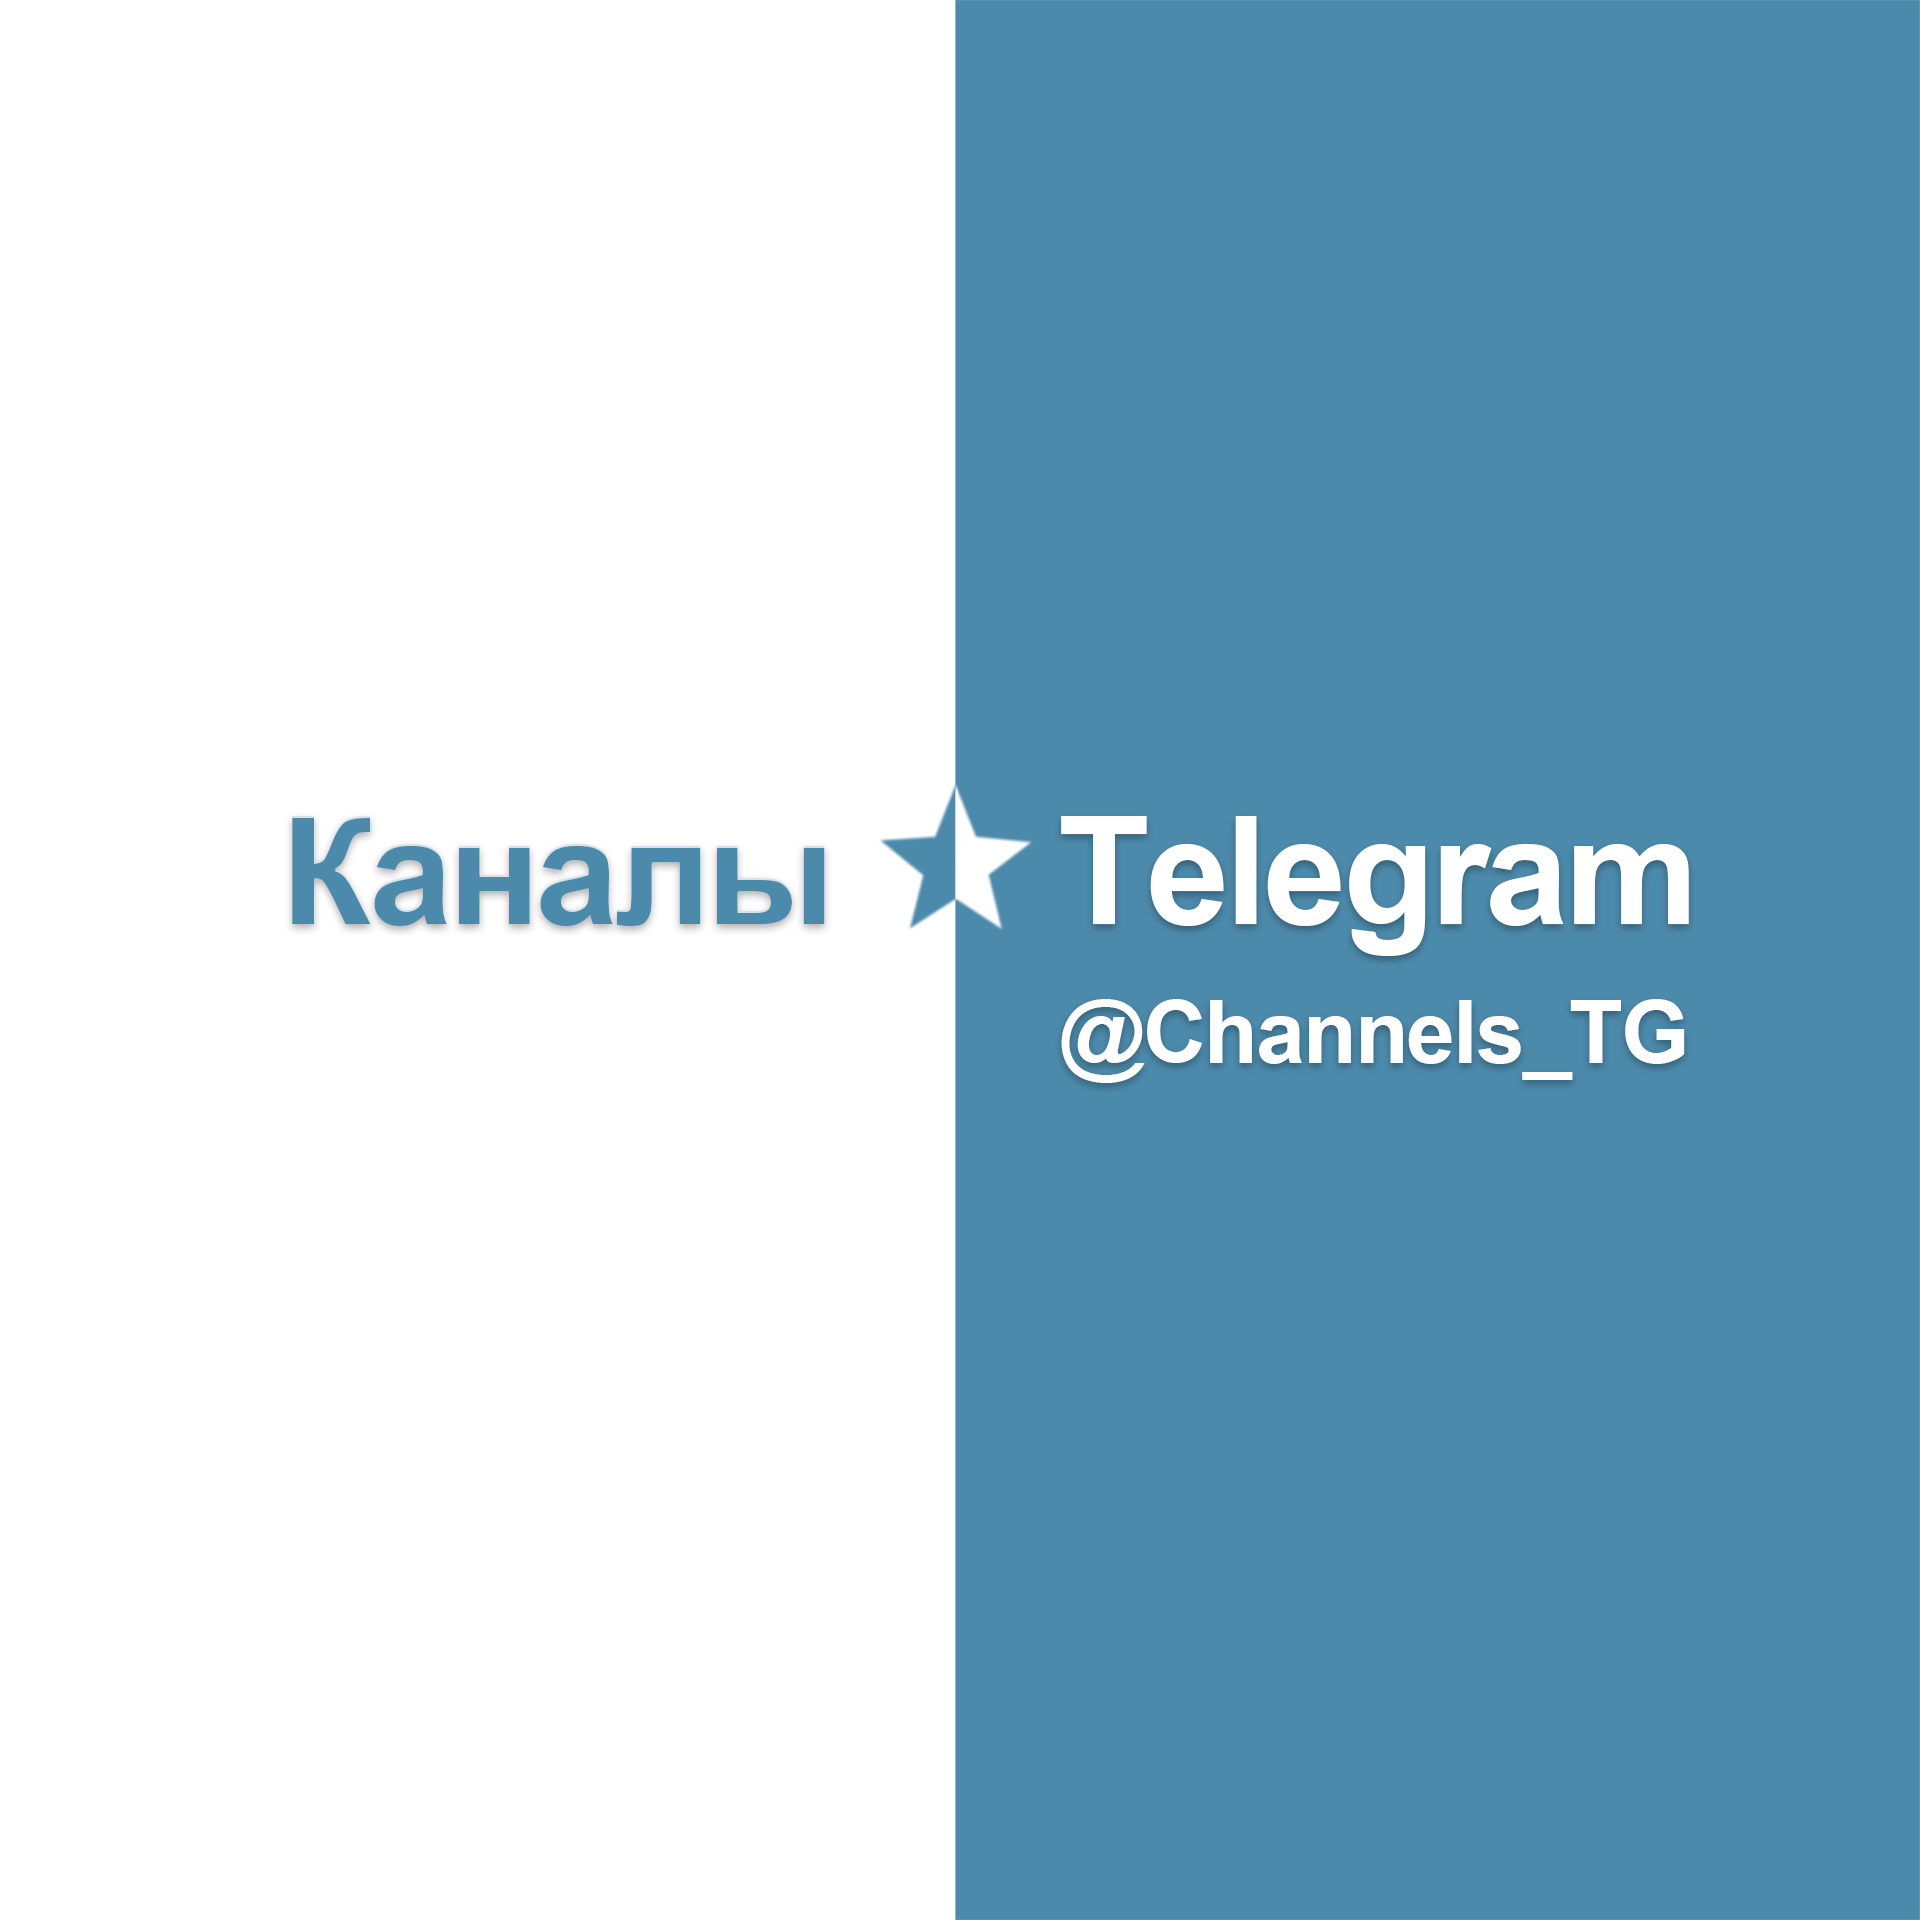 Каналы and Telegram - каталог каналов